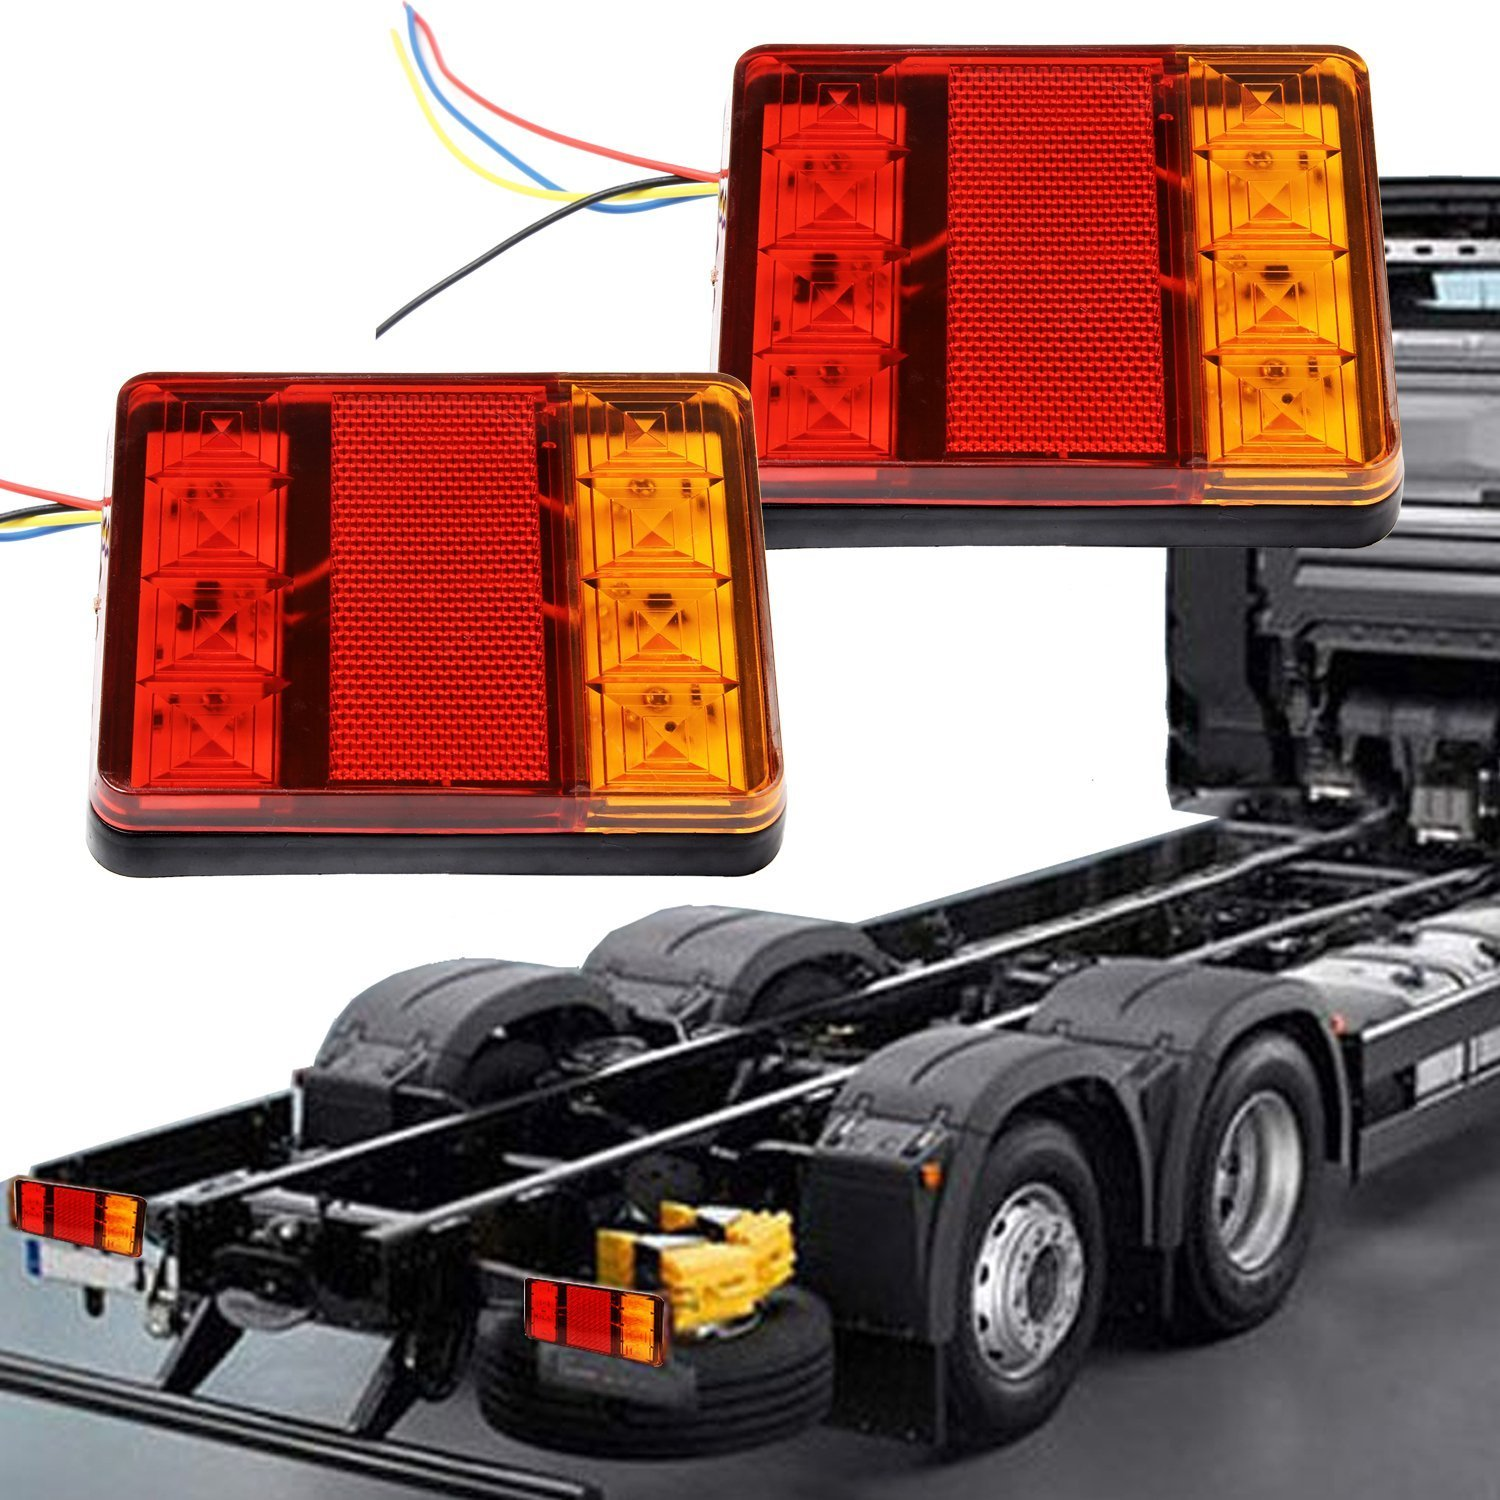 Cheap Led Stop Tail Light Find Deals On Line At Trailer Kit W 2539 Wiring Harness Optronics Lights Get Quotations Truck Lightsdiscoball 2pc Square Rear Brake